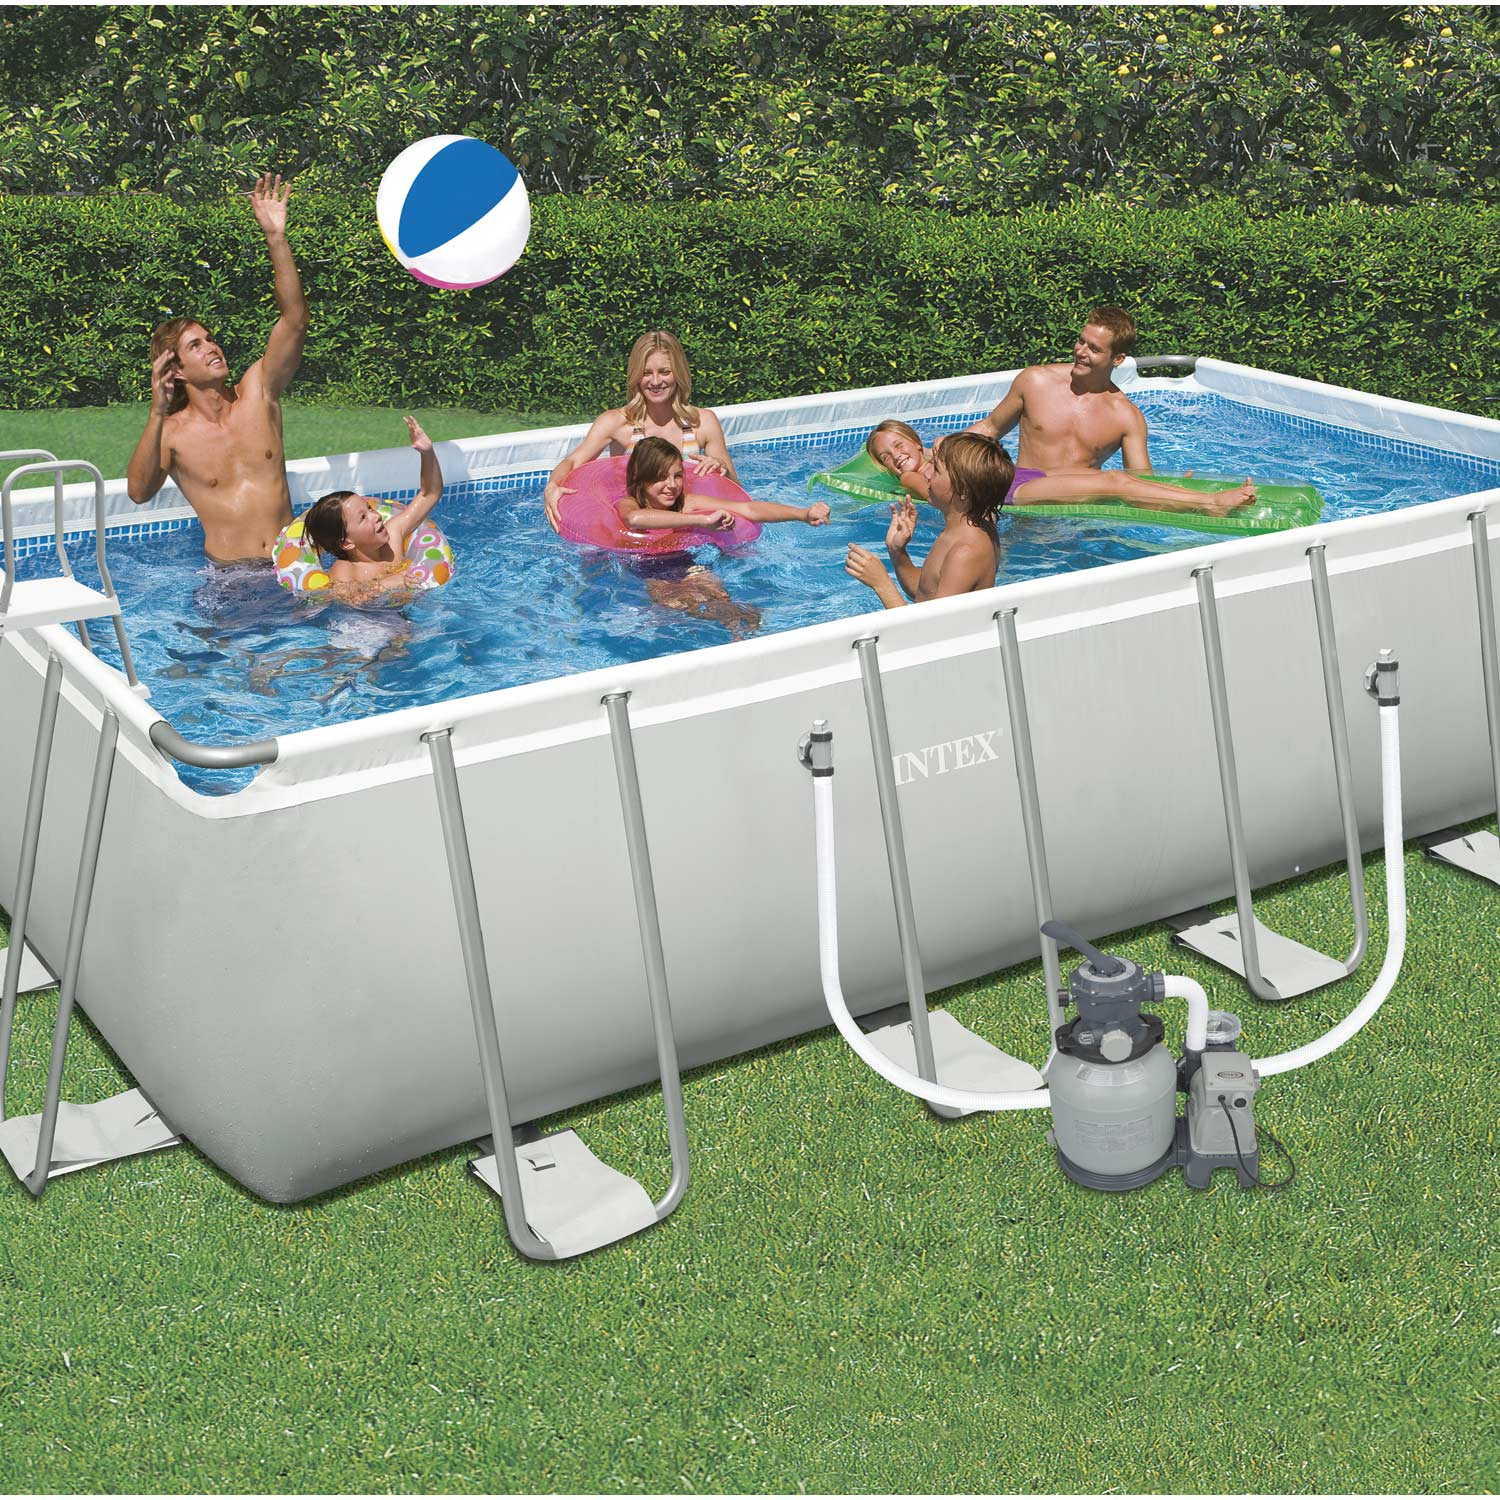 Piscine hors sol autoportante tubulaire ultra silver intex for Piscine hors sol couverte